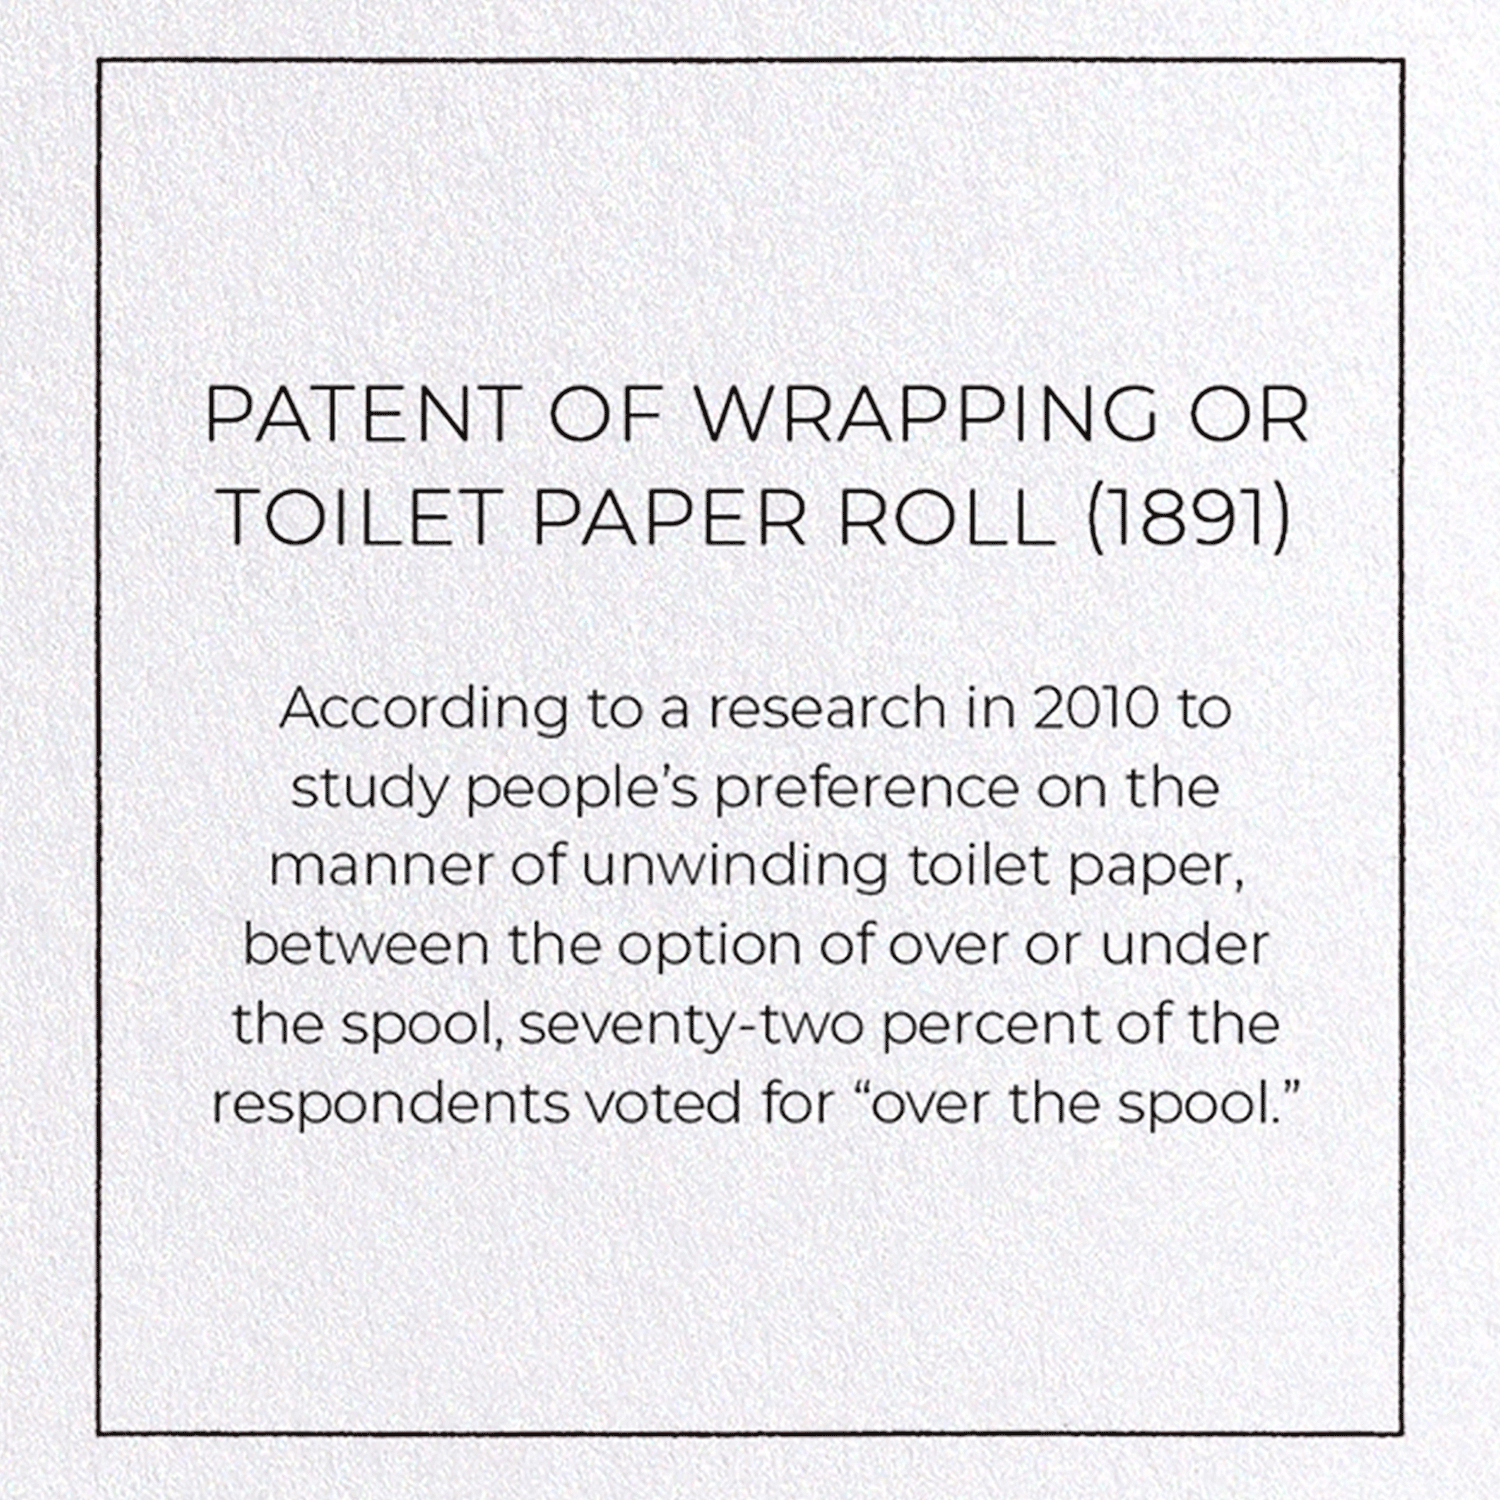 PATENT OF WRAPPING OR TOILET PAPER ROLL (1891): 8xCards